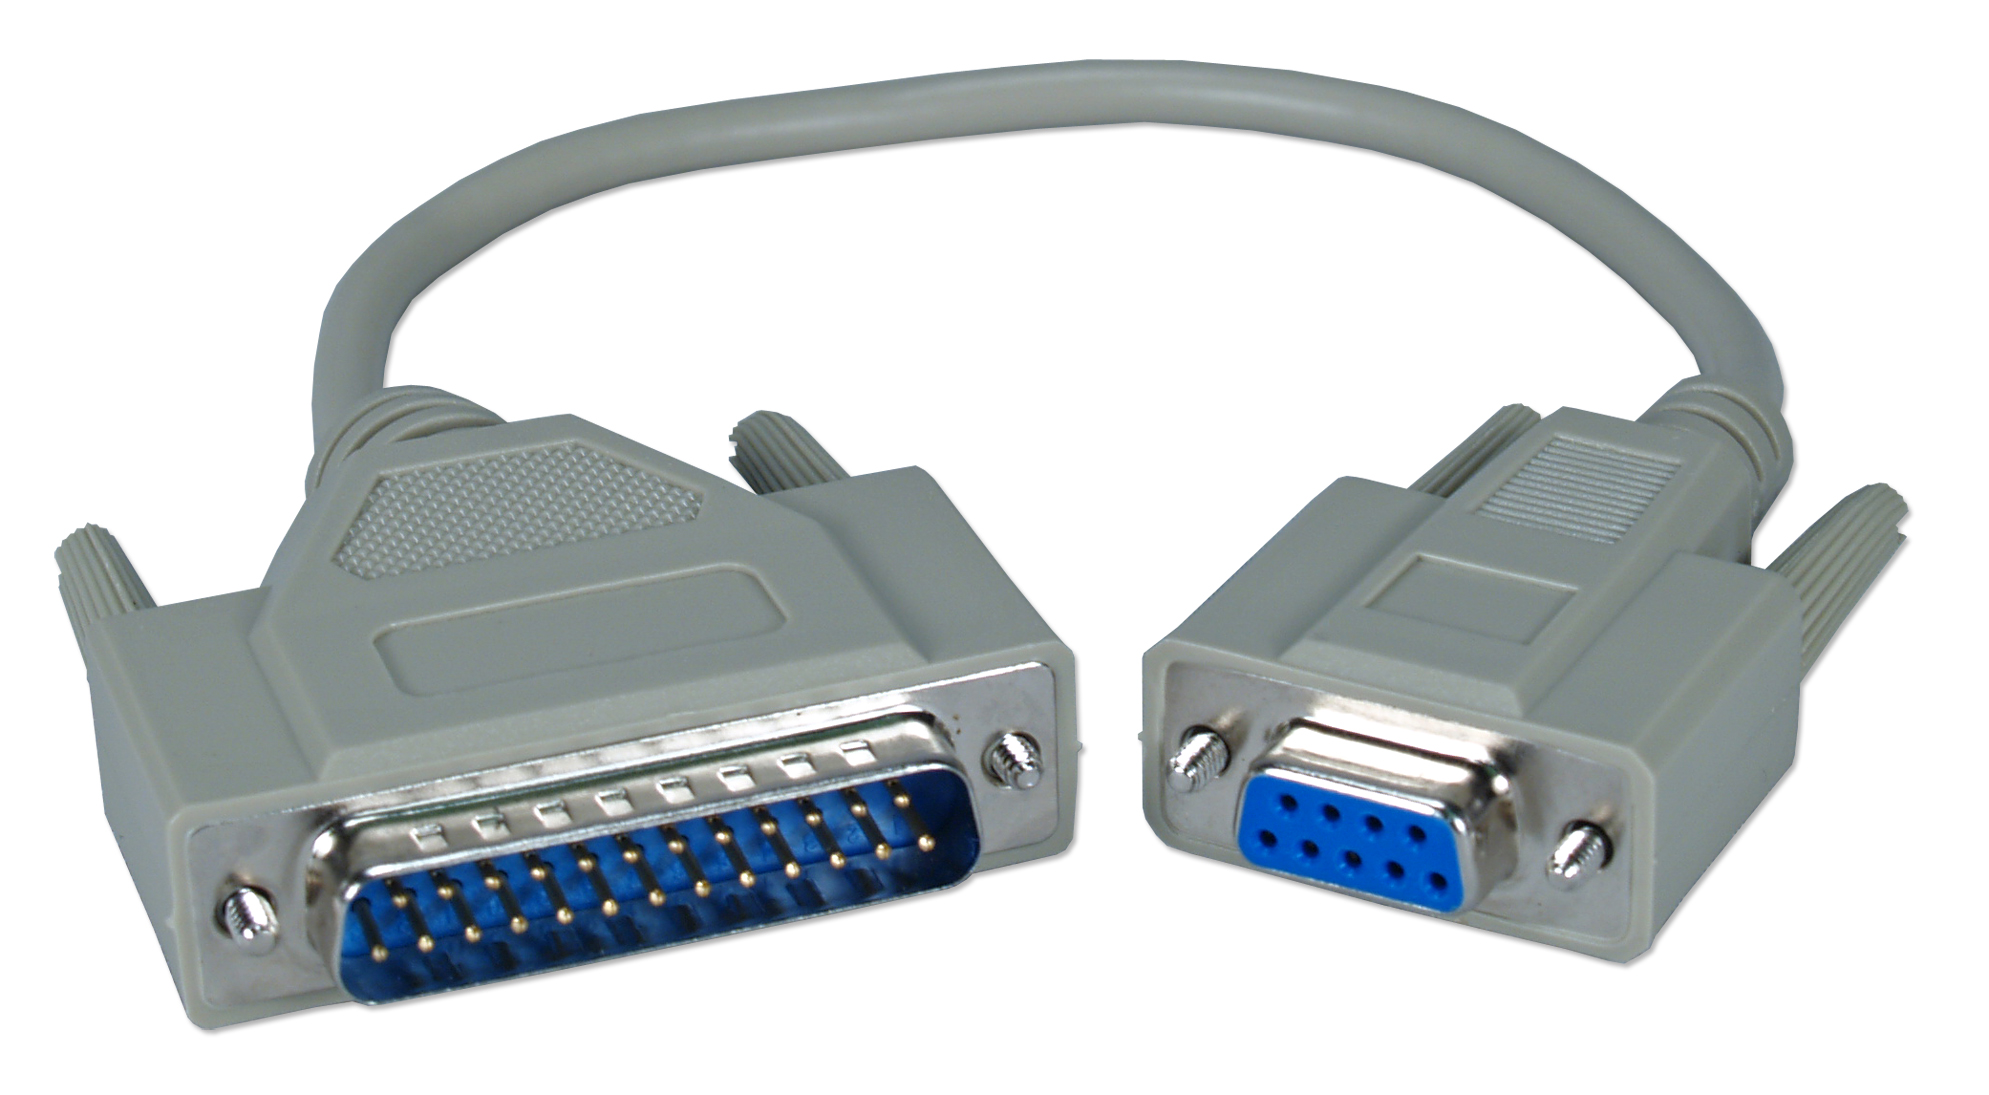 Db9 Pinout Diagram As Well Rj45 To Rs232 Serial Cable On Db9 Rj45